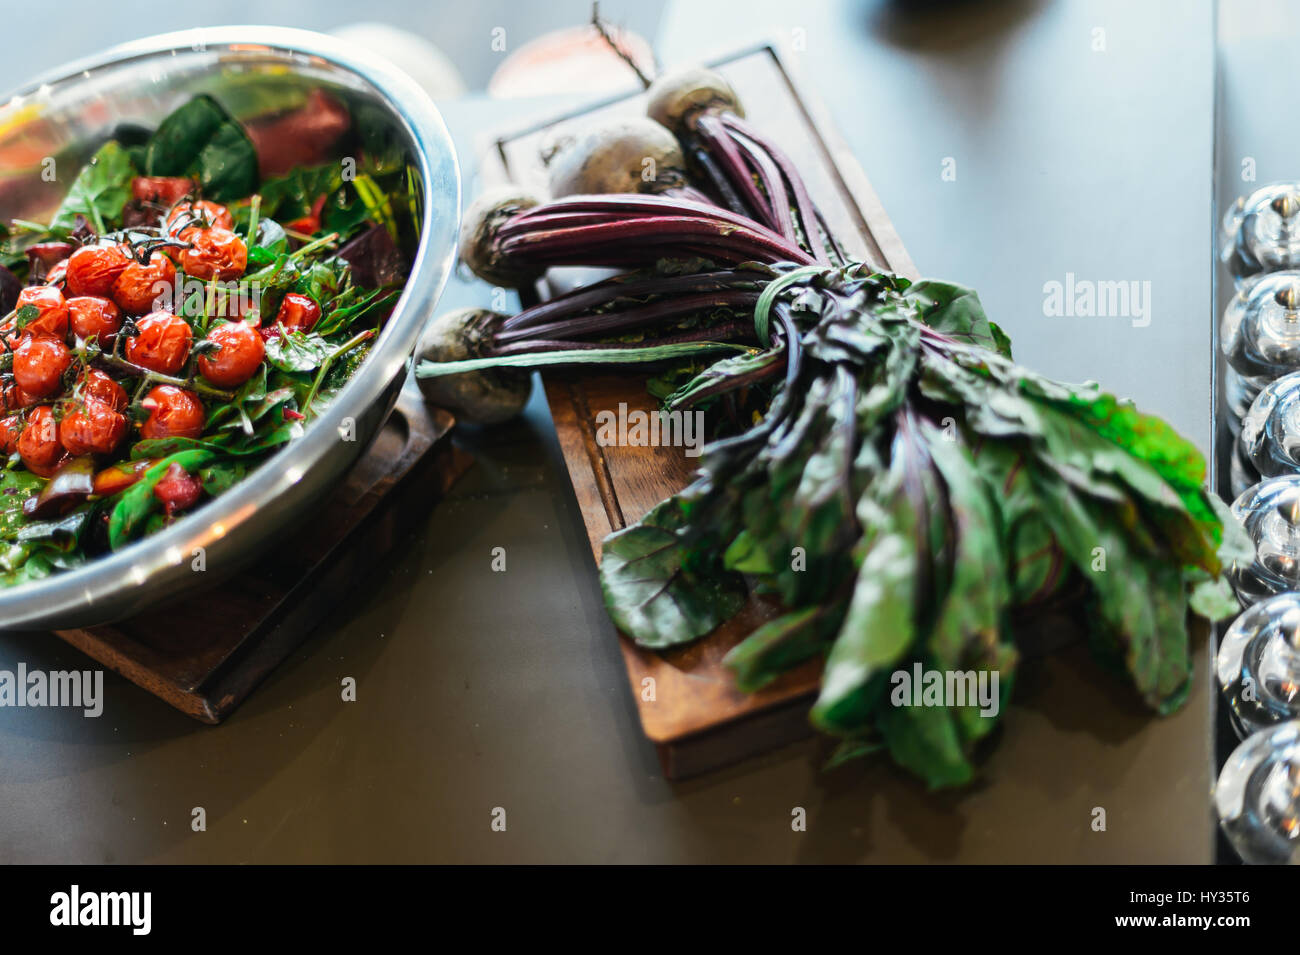 Beetroot Salad with Roasted Cherry Tomatoes on the Vine - Stock Image